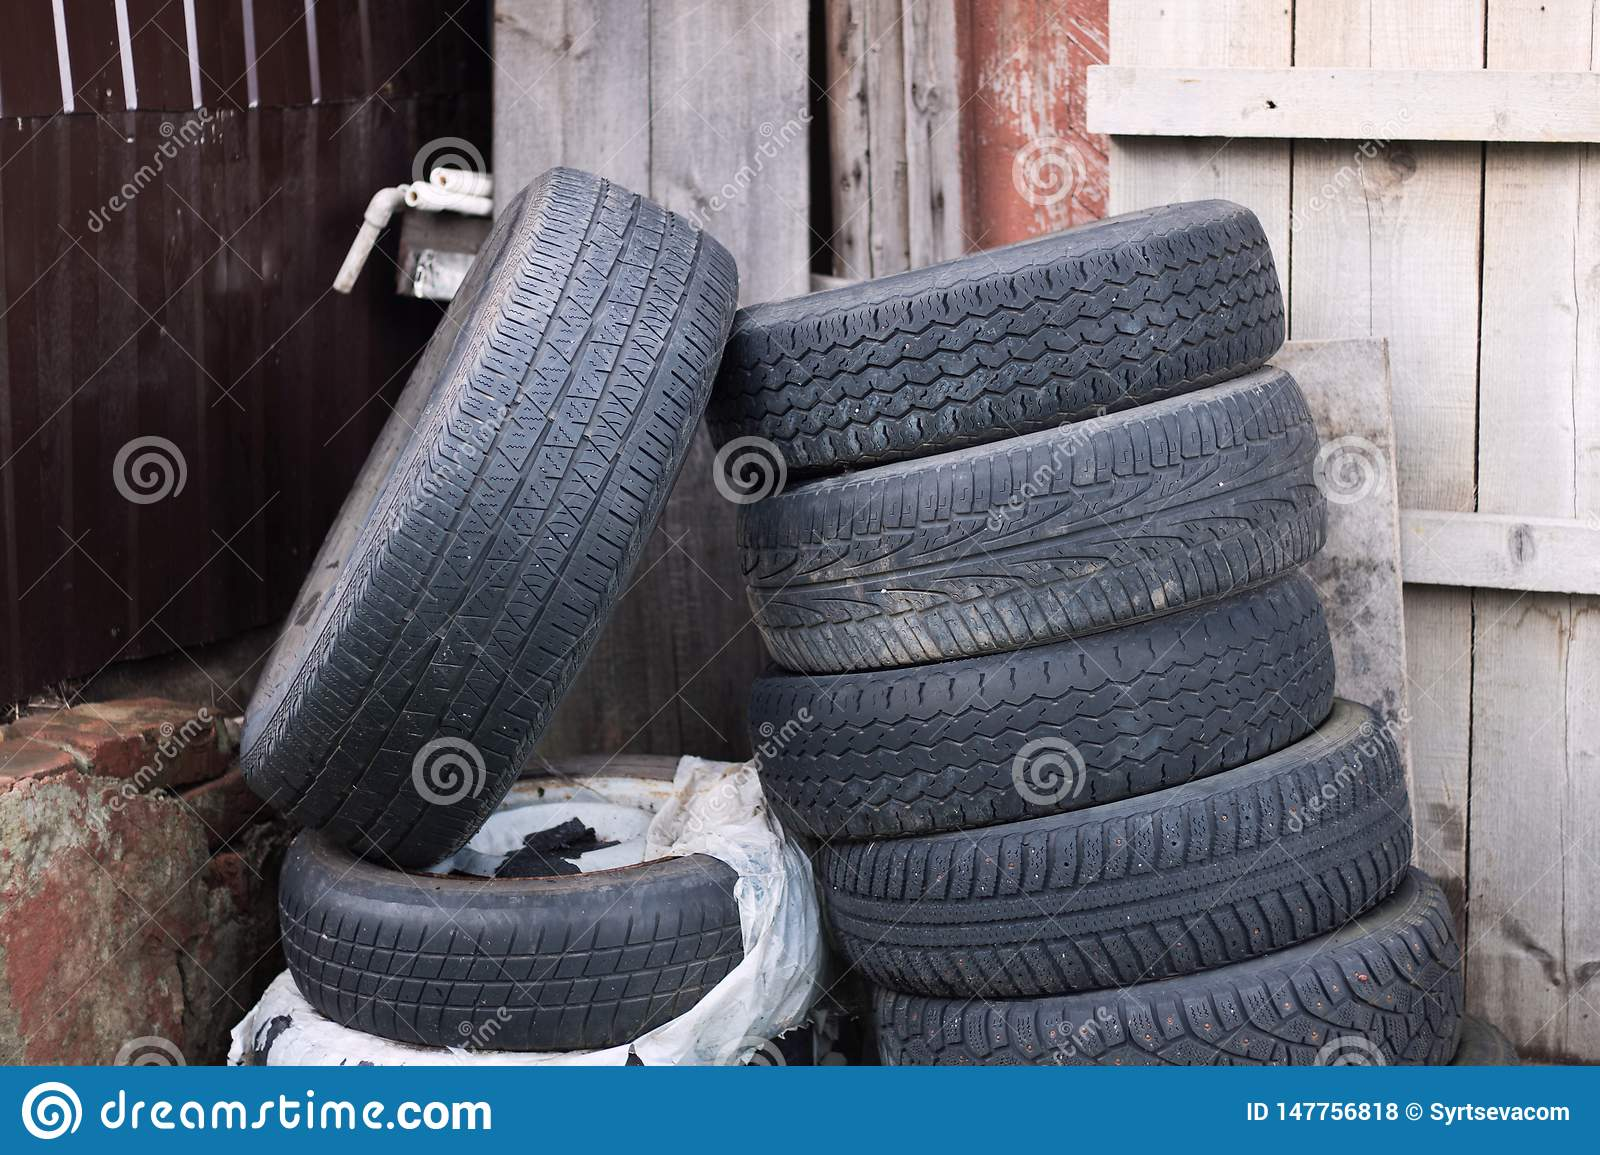 Old rubber tires randomly lie near an abandoned wooden house